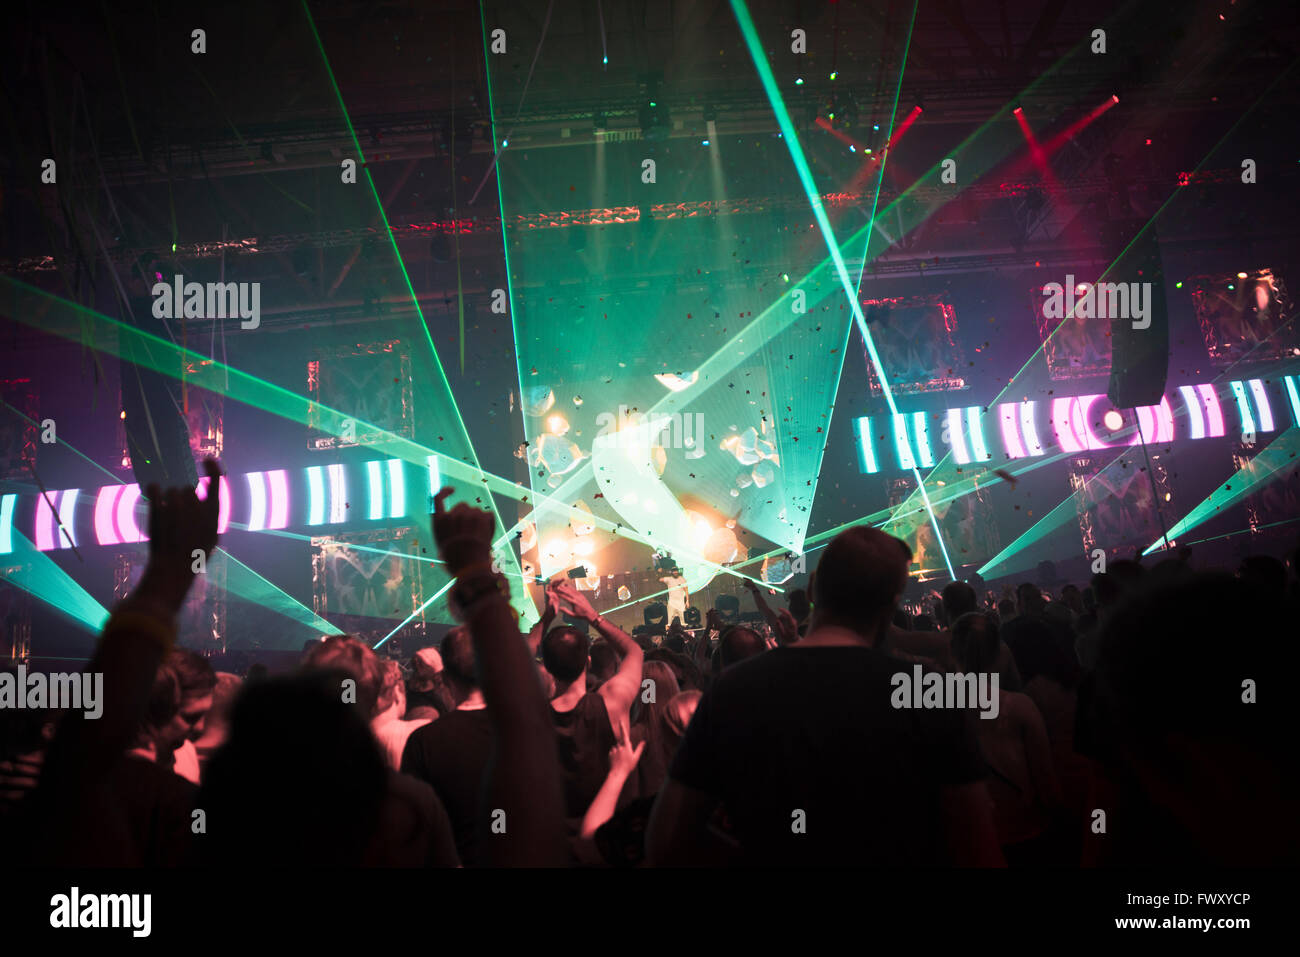 Finland, Uusimaa, Helsinki, Cheering audience at Summer Sound Festival - Stock Image